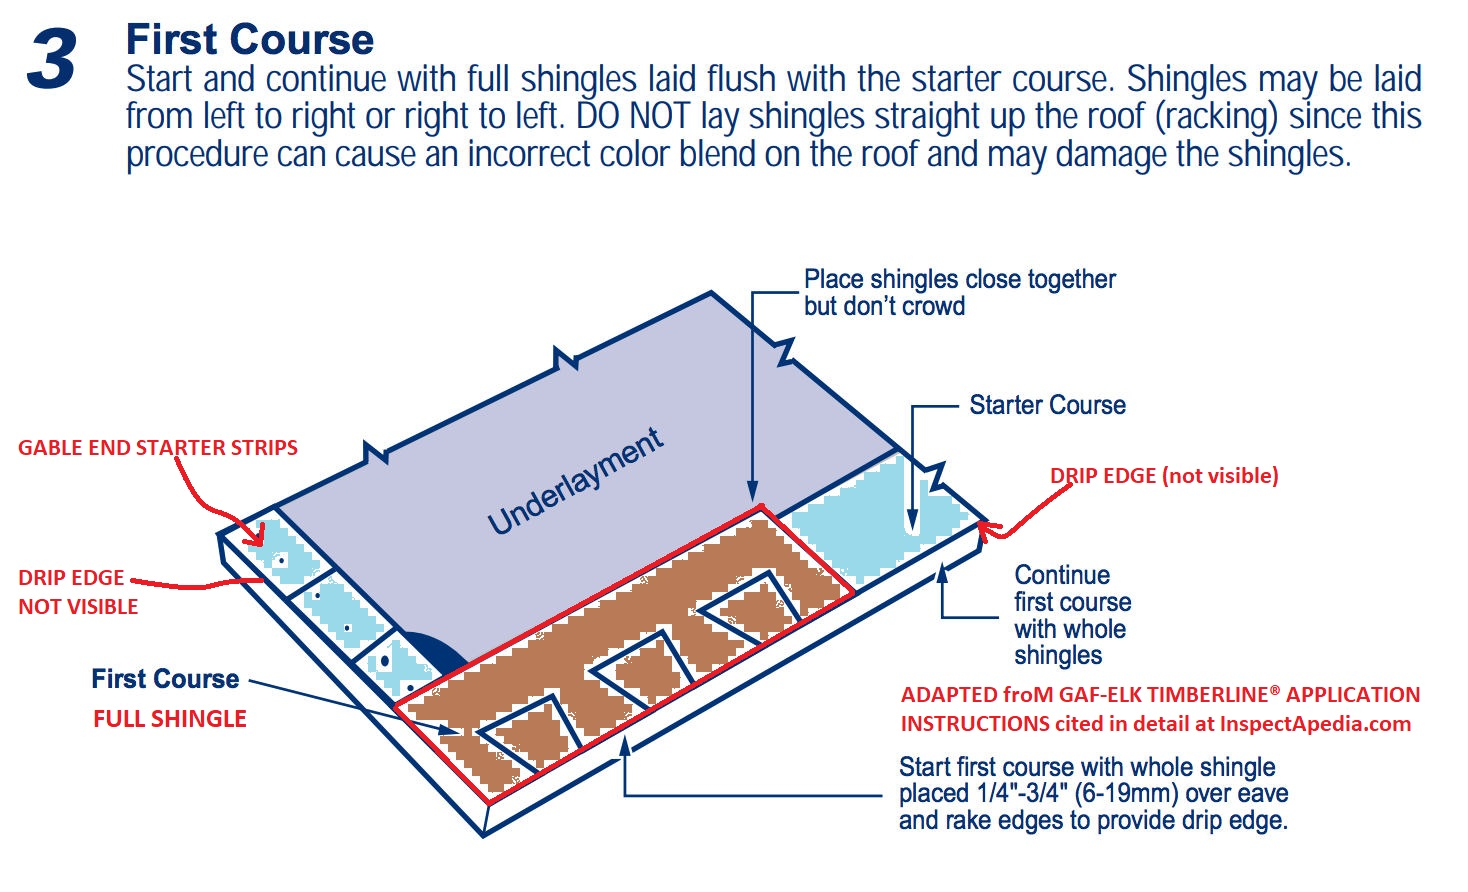 Asphalt Shingle Roof Installation Procedures Best Practices Guide